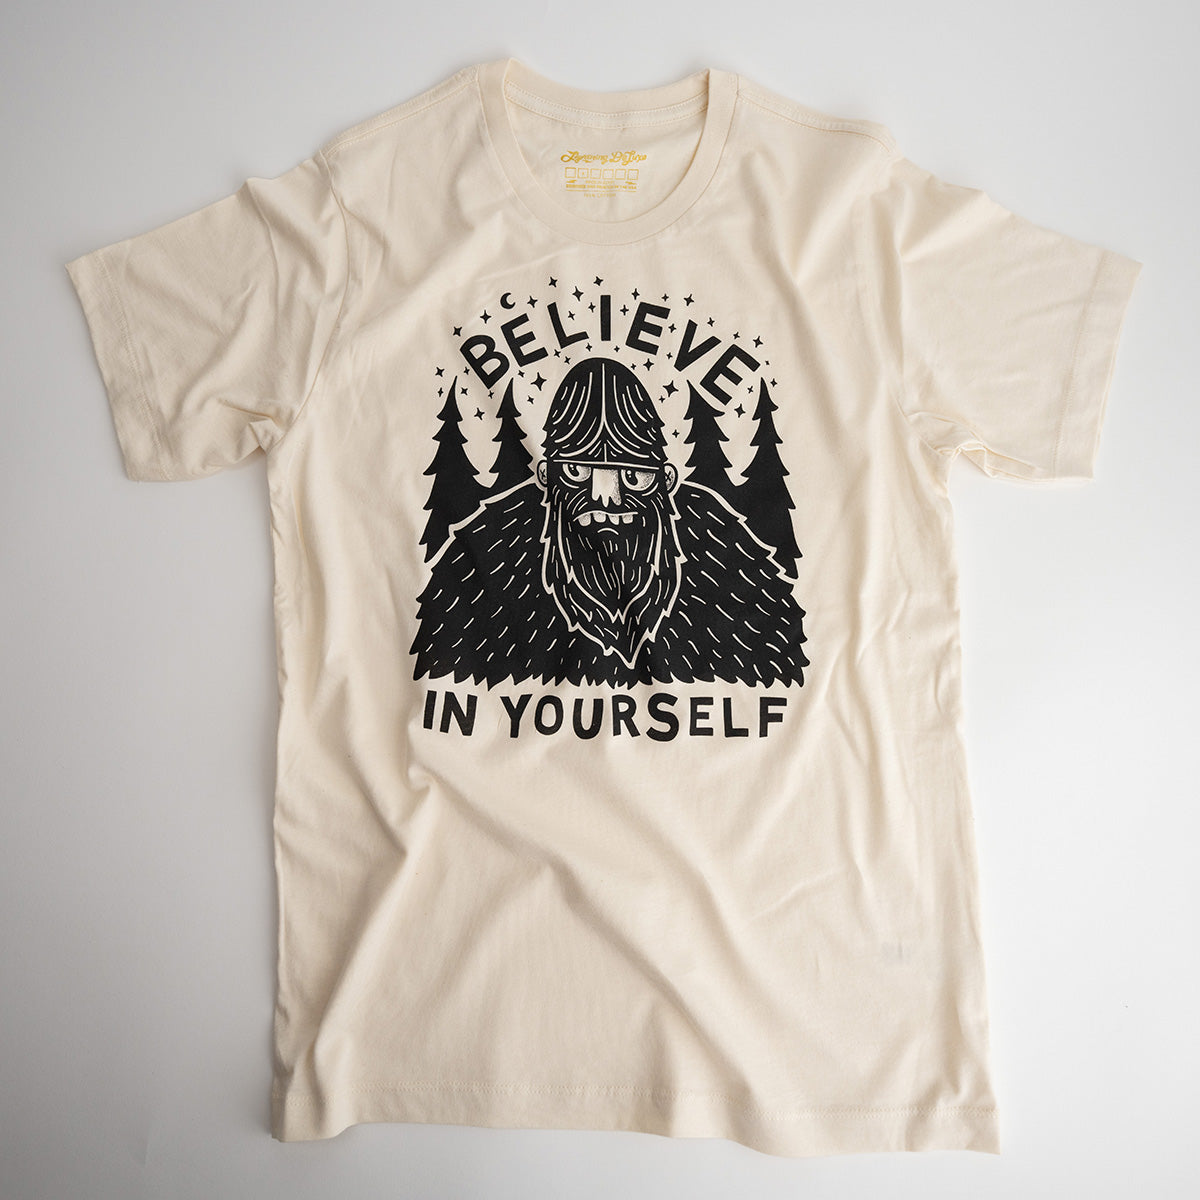 (ADULTS) BELIEVE IN YOURSELF - SASQUATCH TEE